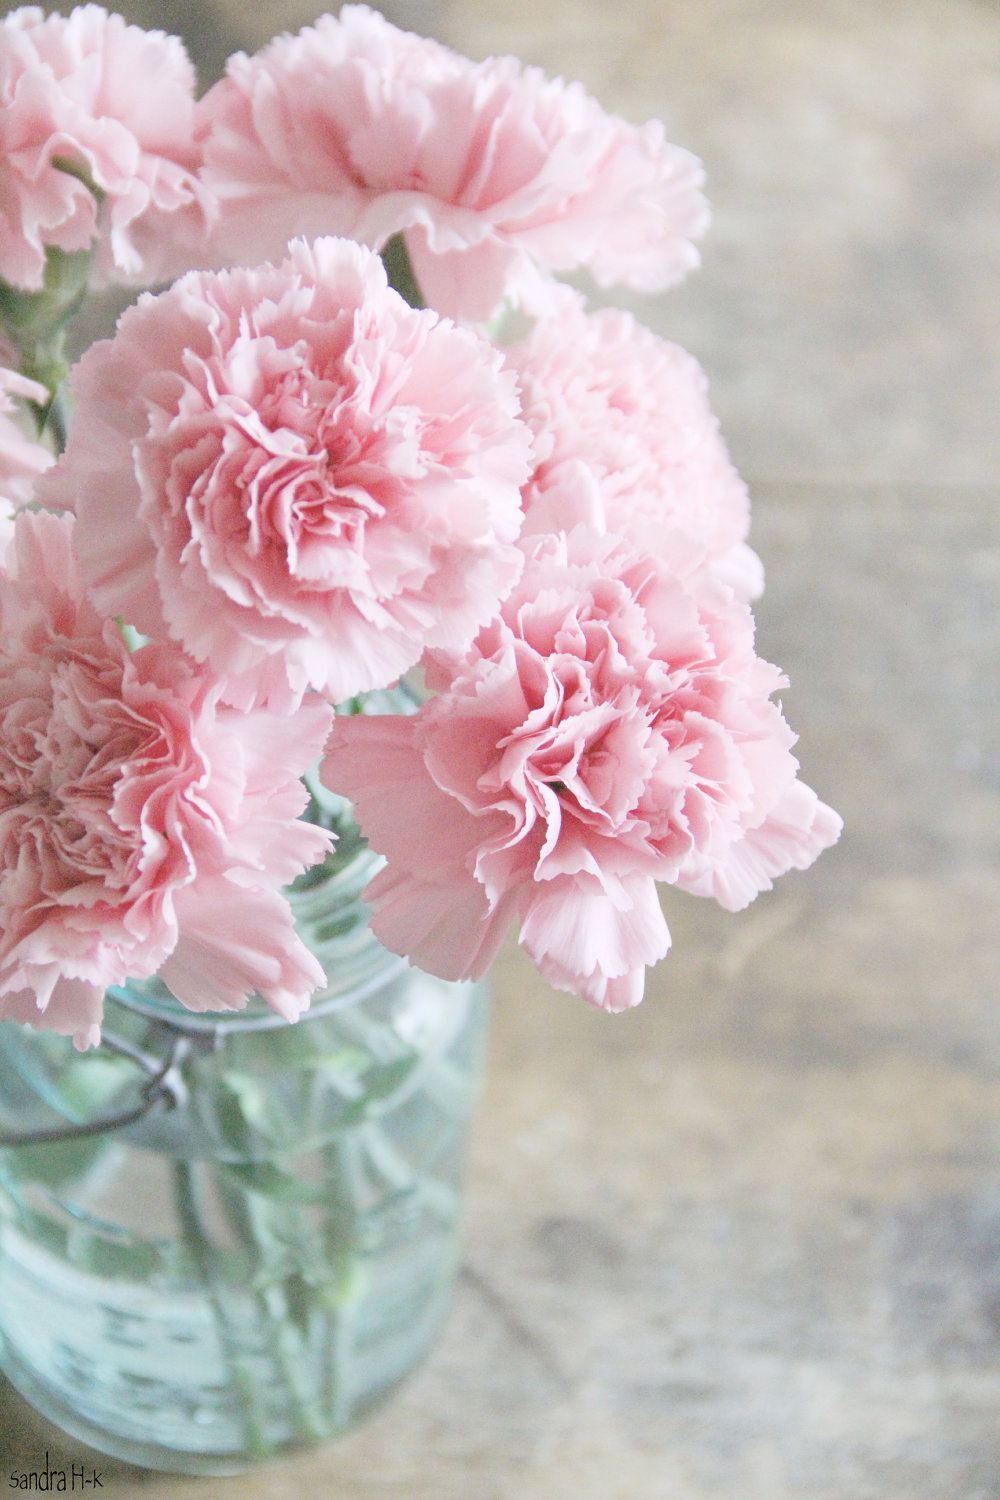 Living A Simple And Blessed Life Pink Carnations Flower Arrangements Love Flowers